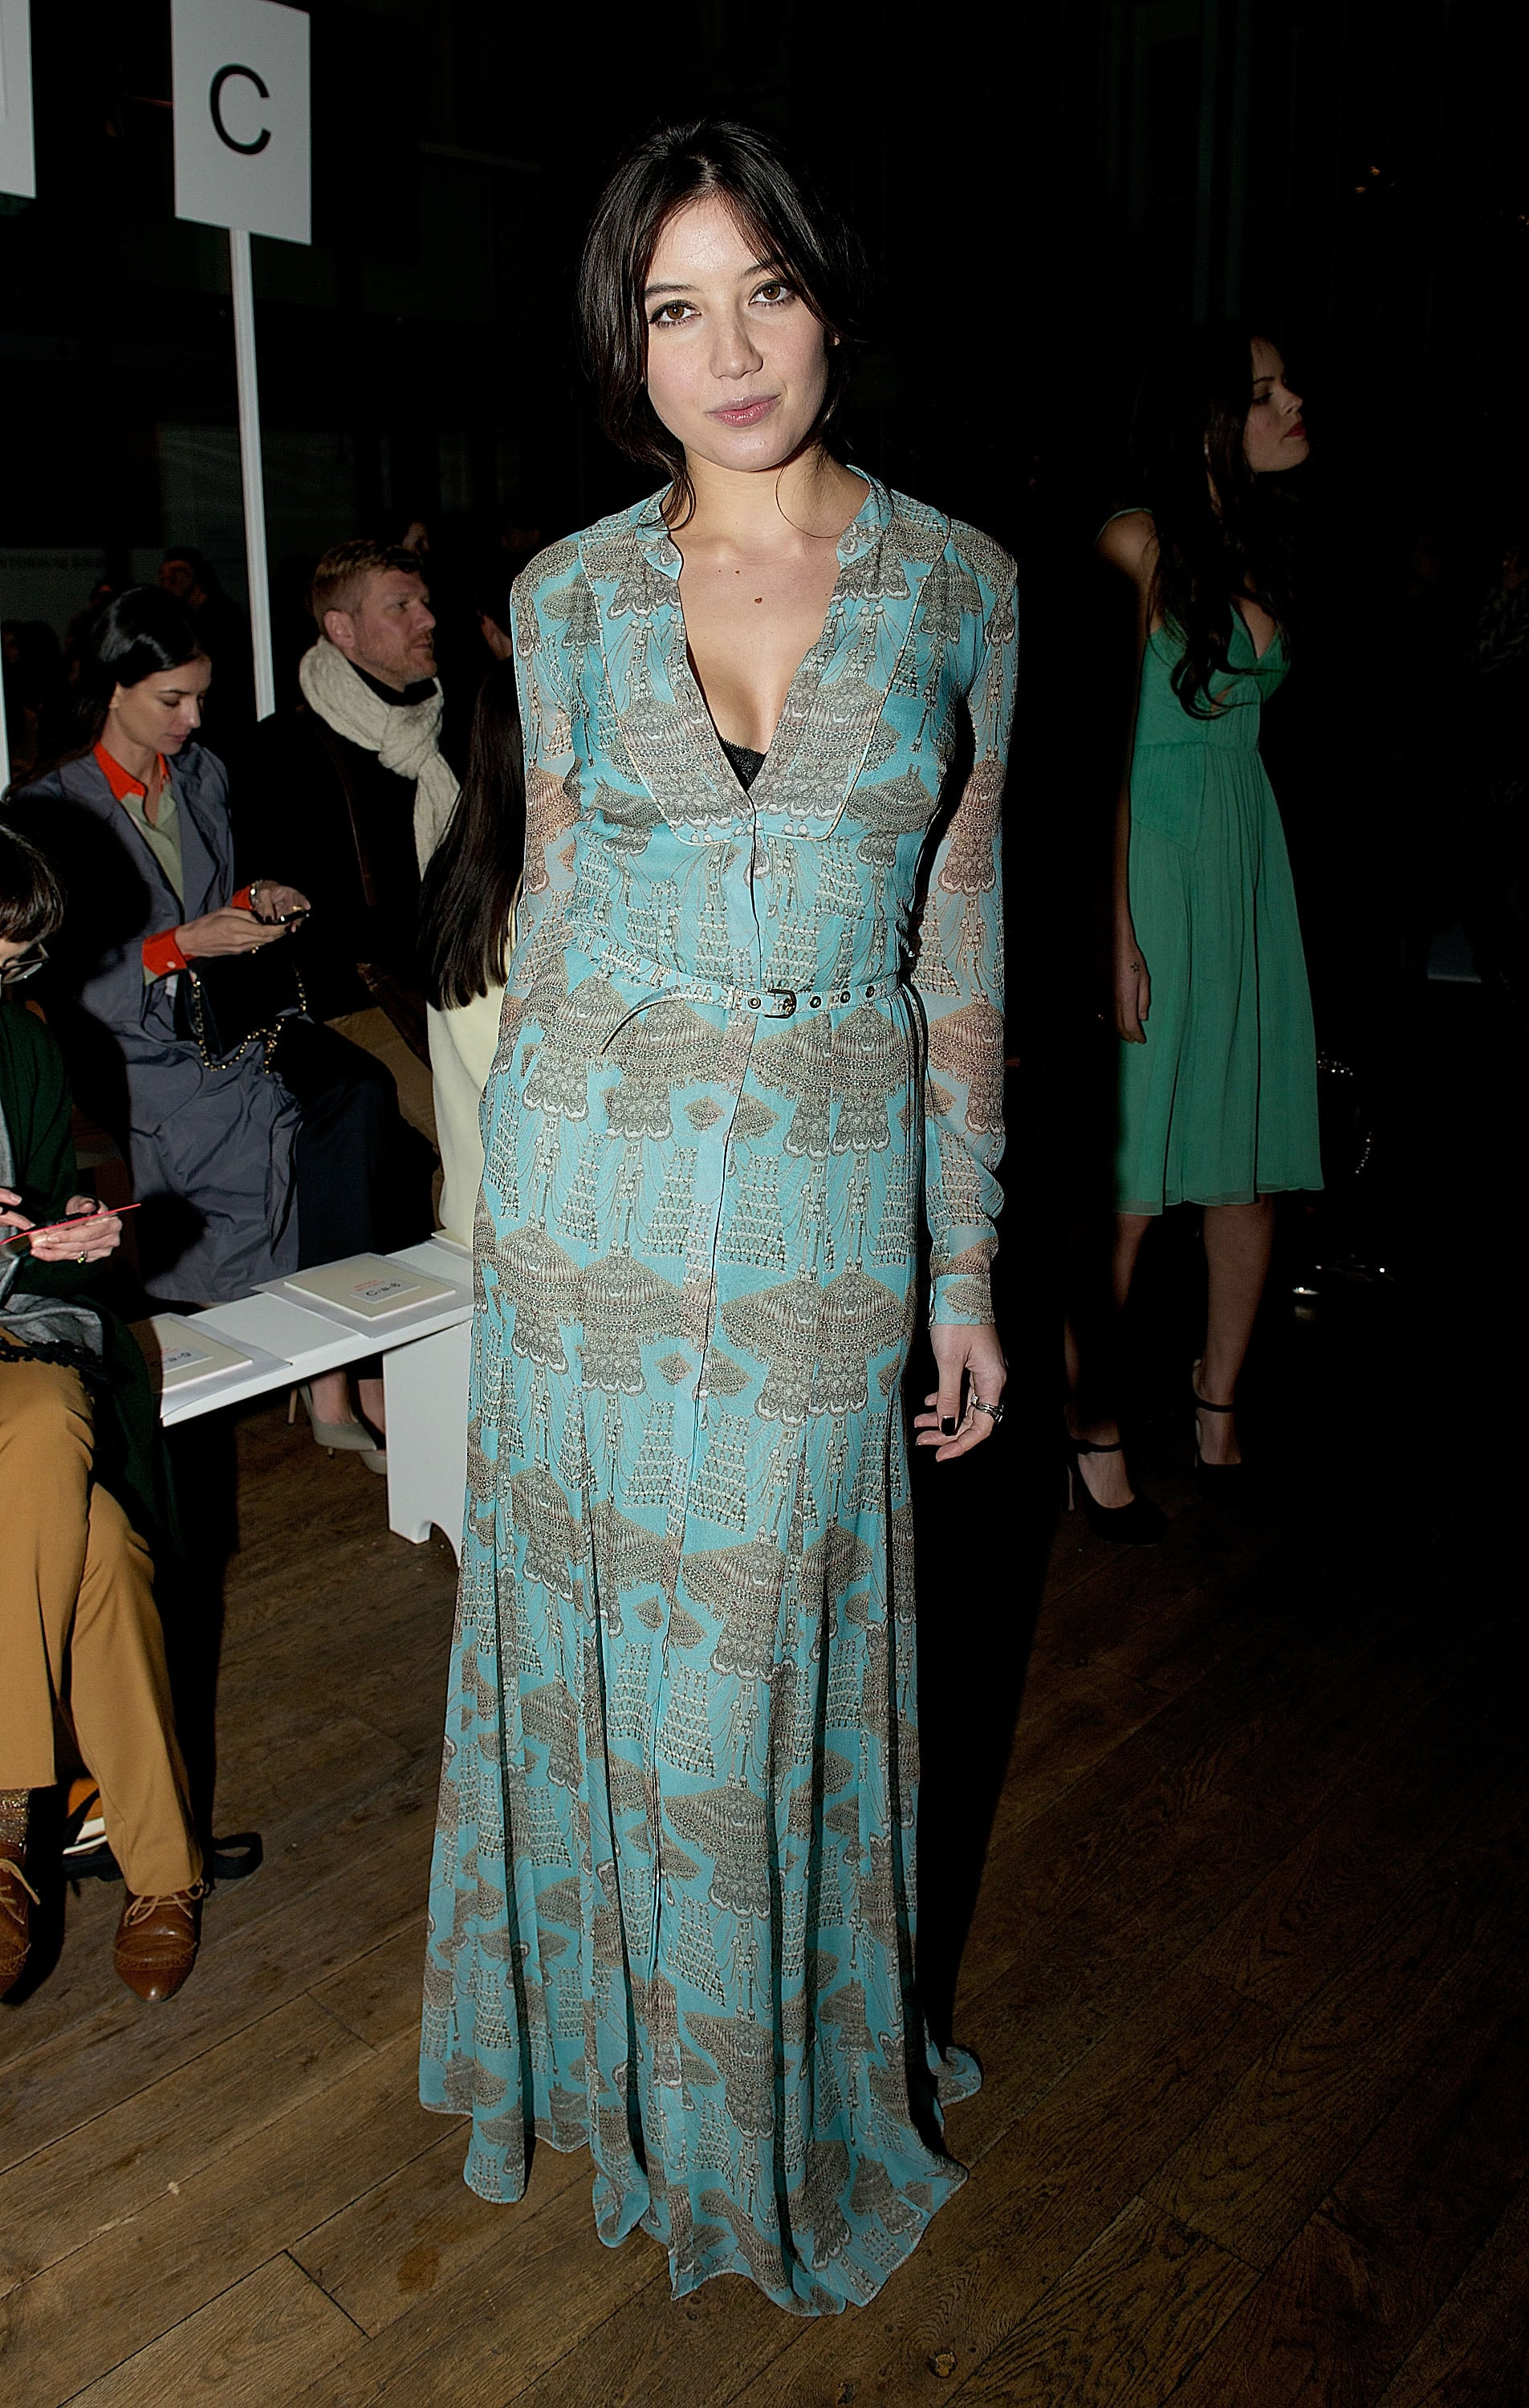 Daisy Lowe at the Matthew Williamson Fall 2013 show in London.